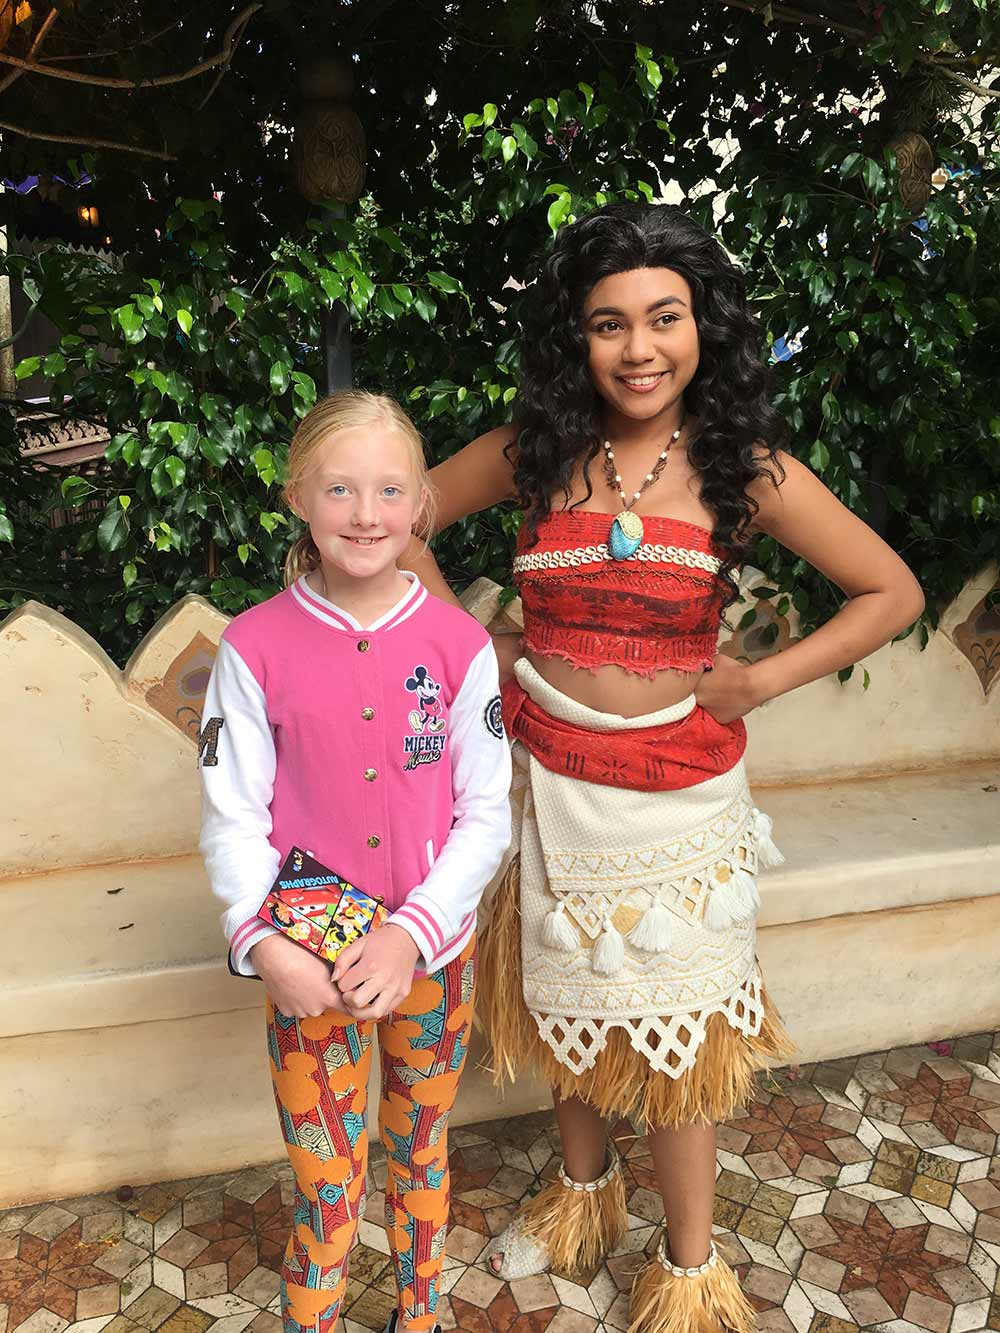 The Best Disneyland Character Guide - How to Meet and Greet